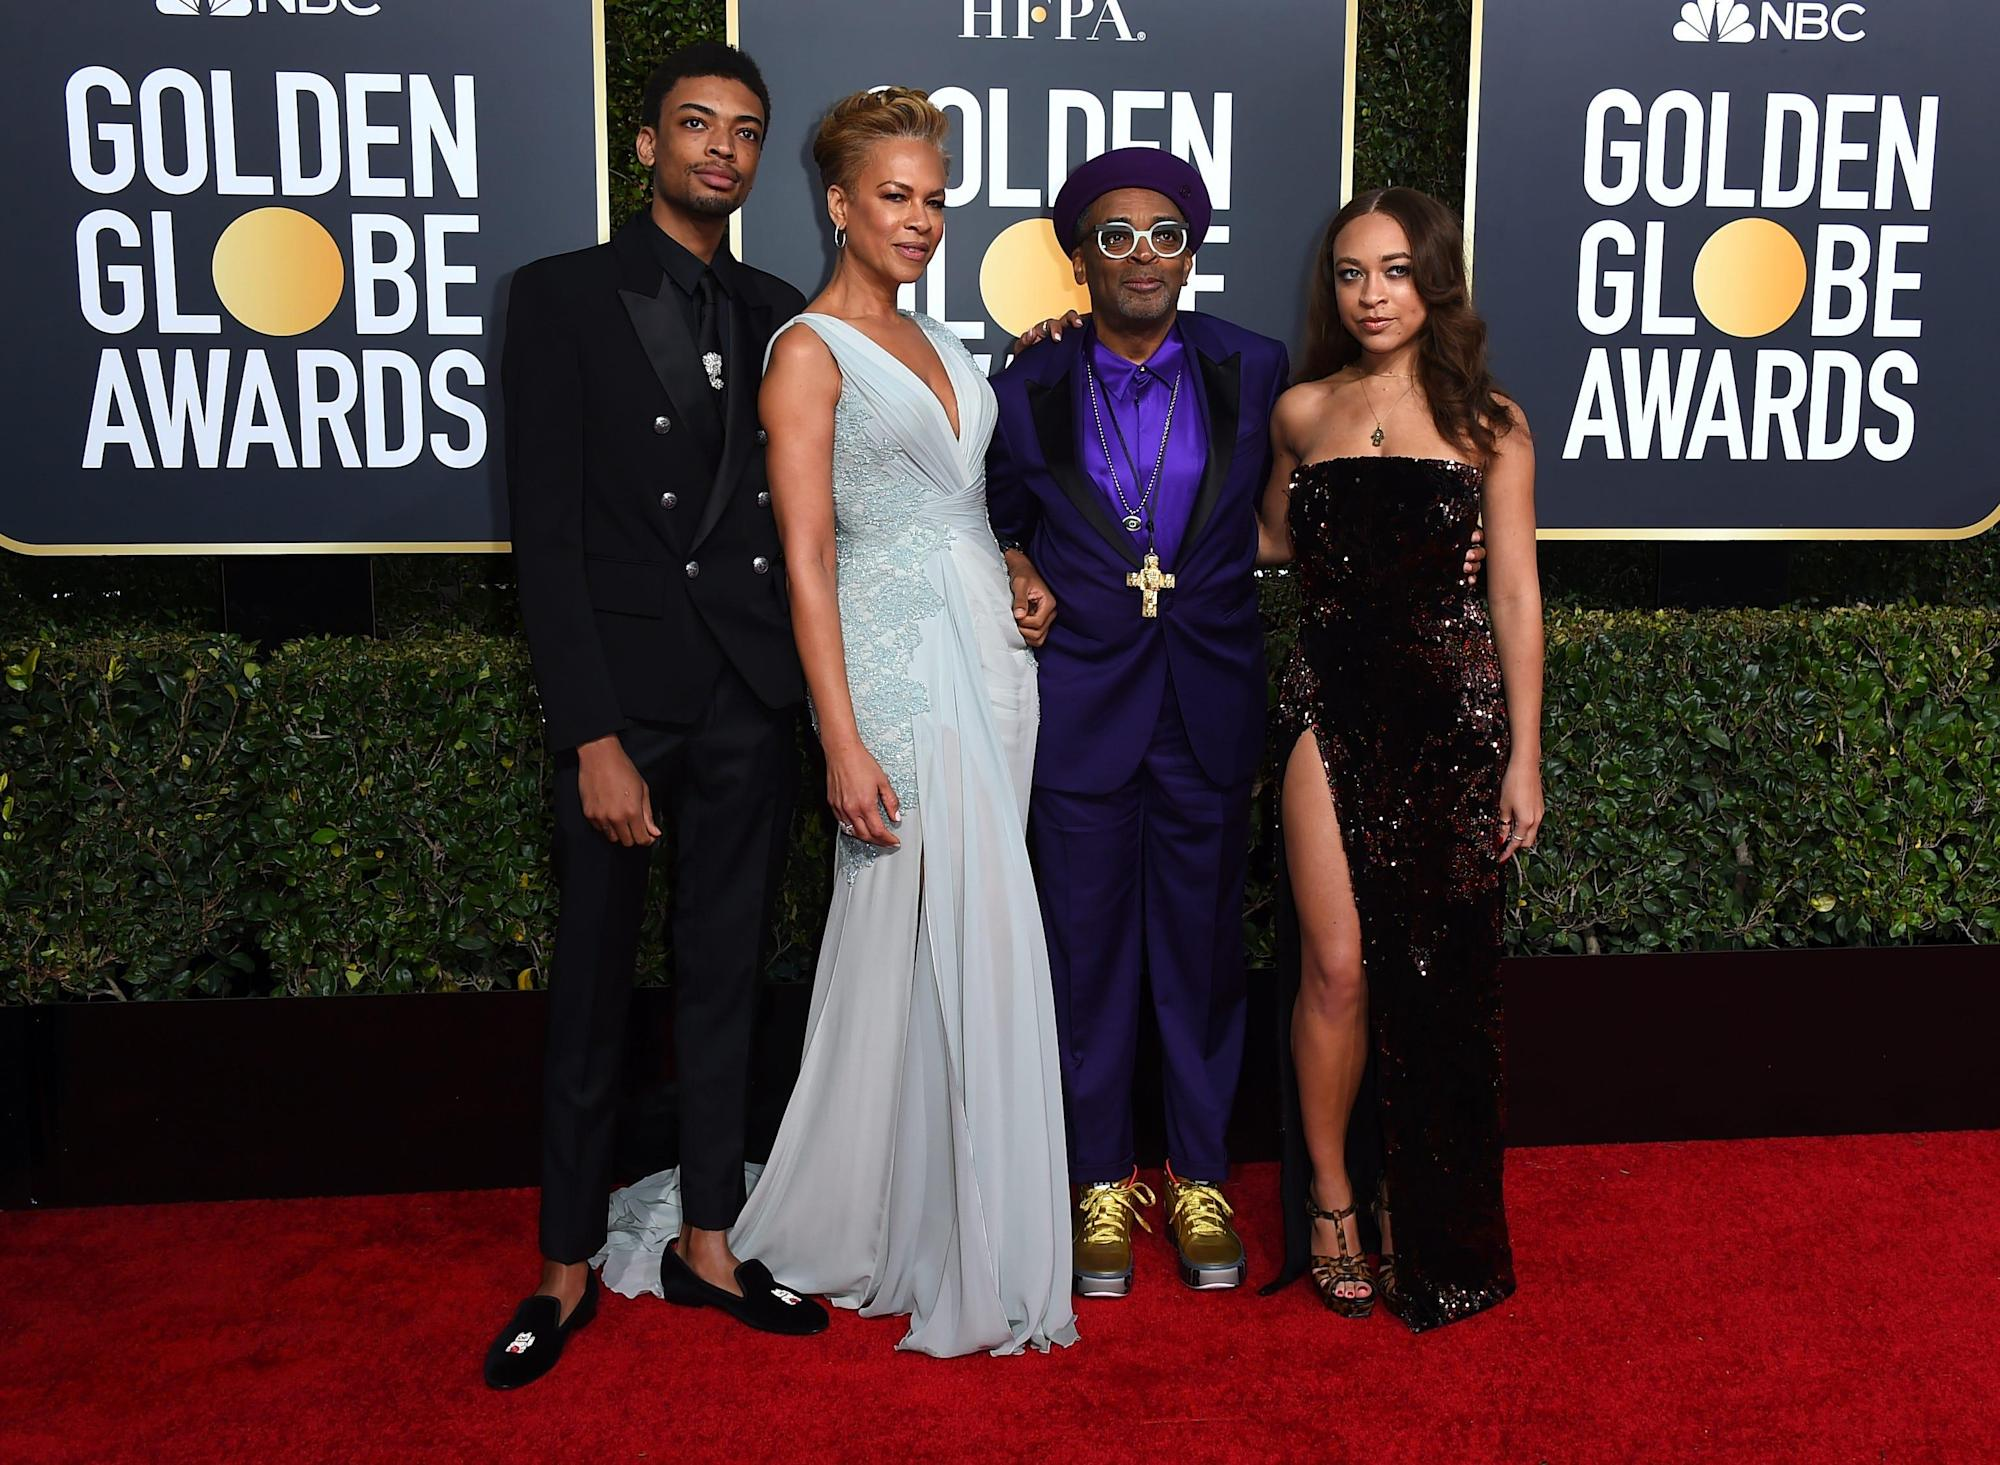 Spike Lee's children, Satchel and Jackson Lee, named this year's Golden Globes ambassadors